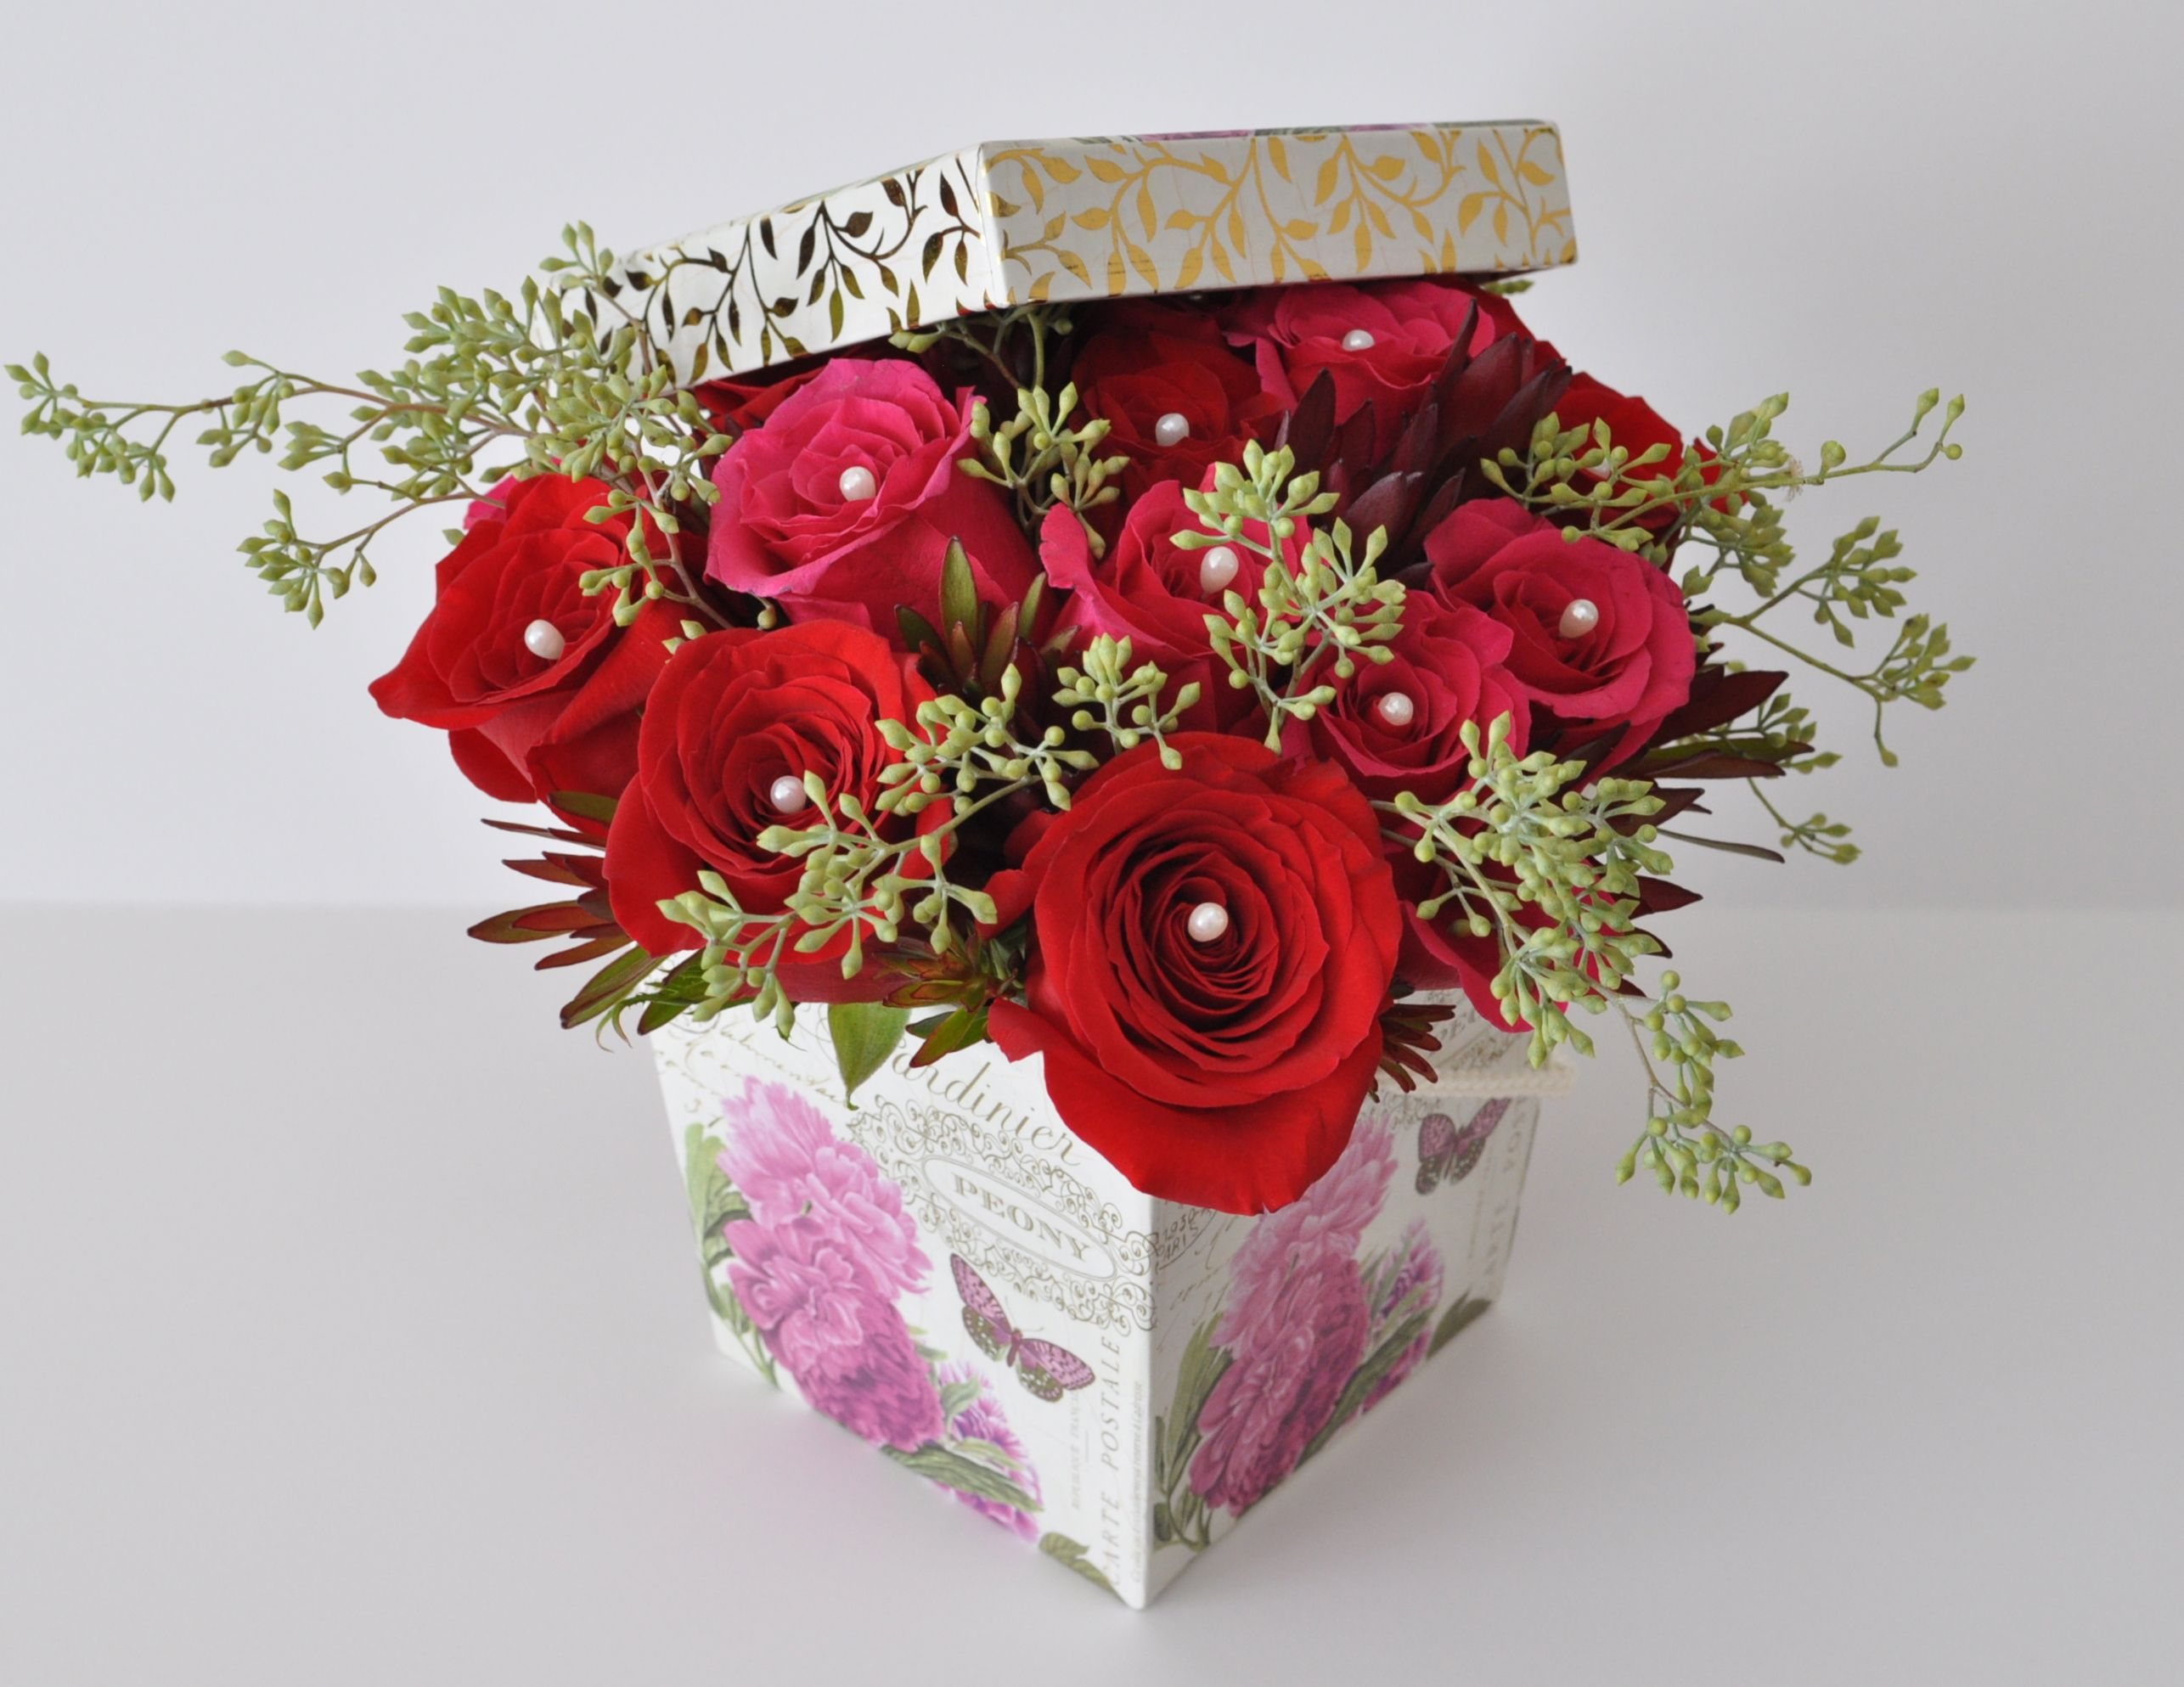 A Pretty Flower Box For The Valentine S Day If You Want To Go Beyond A Dozen Of Roses Red And Pink Roses De Valentines Flowers Flower Boxes Red And Pink Roses